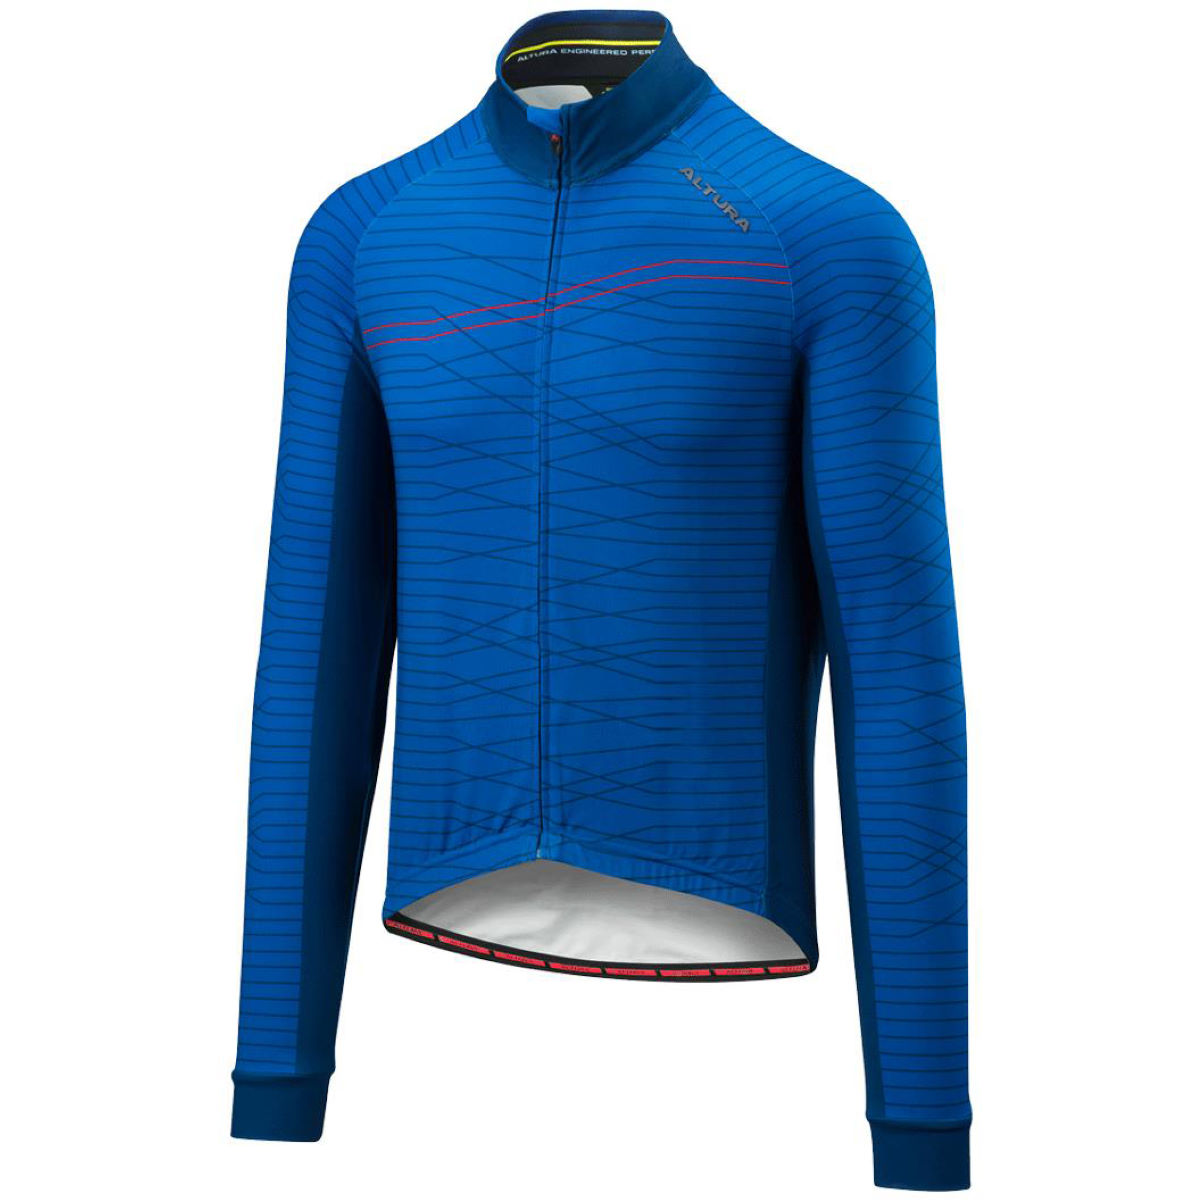 Altura Thermo Lines Long Sleeve Jersey - Maillots